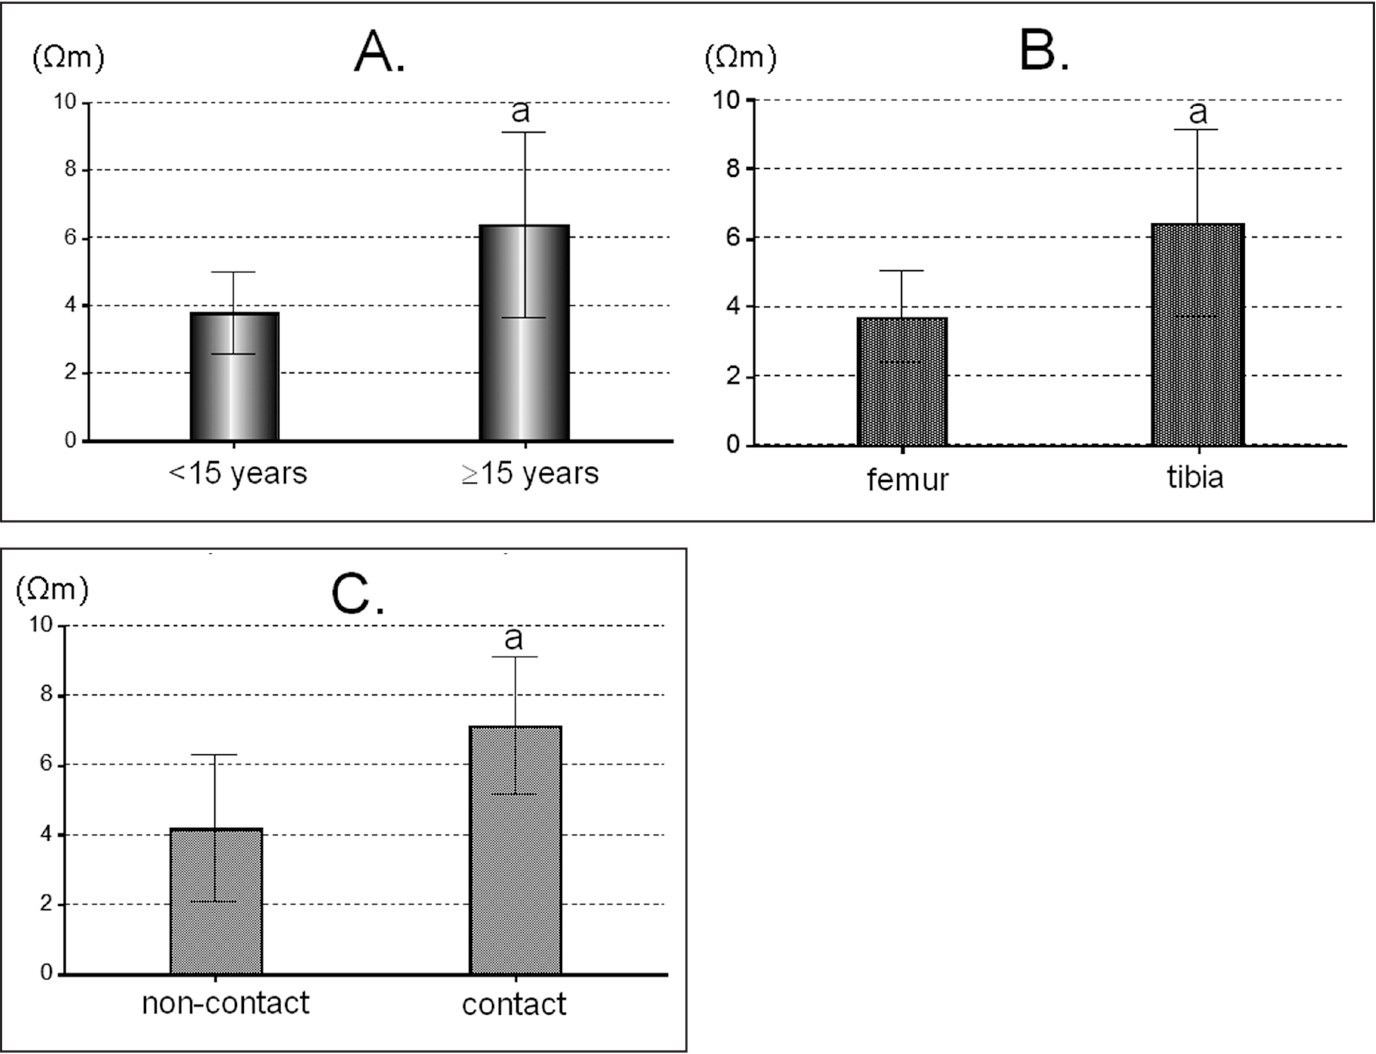 Comparison of resistance rates showing significant differences between age younger than 15 years vs 15 years or older (A), correction sites (femur vs tibia) (B), and treatment methods (noncontact vs contact) (C). aP<.01 by Welch's t test.